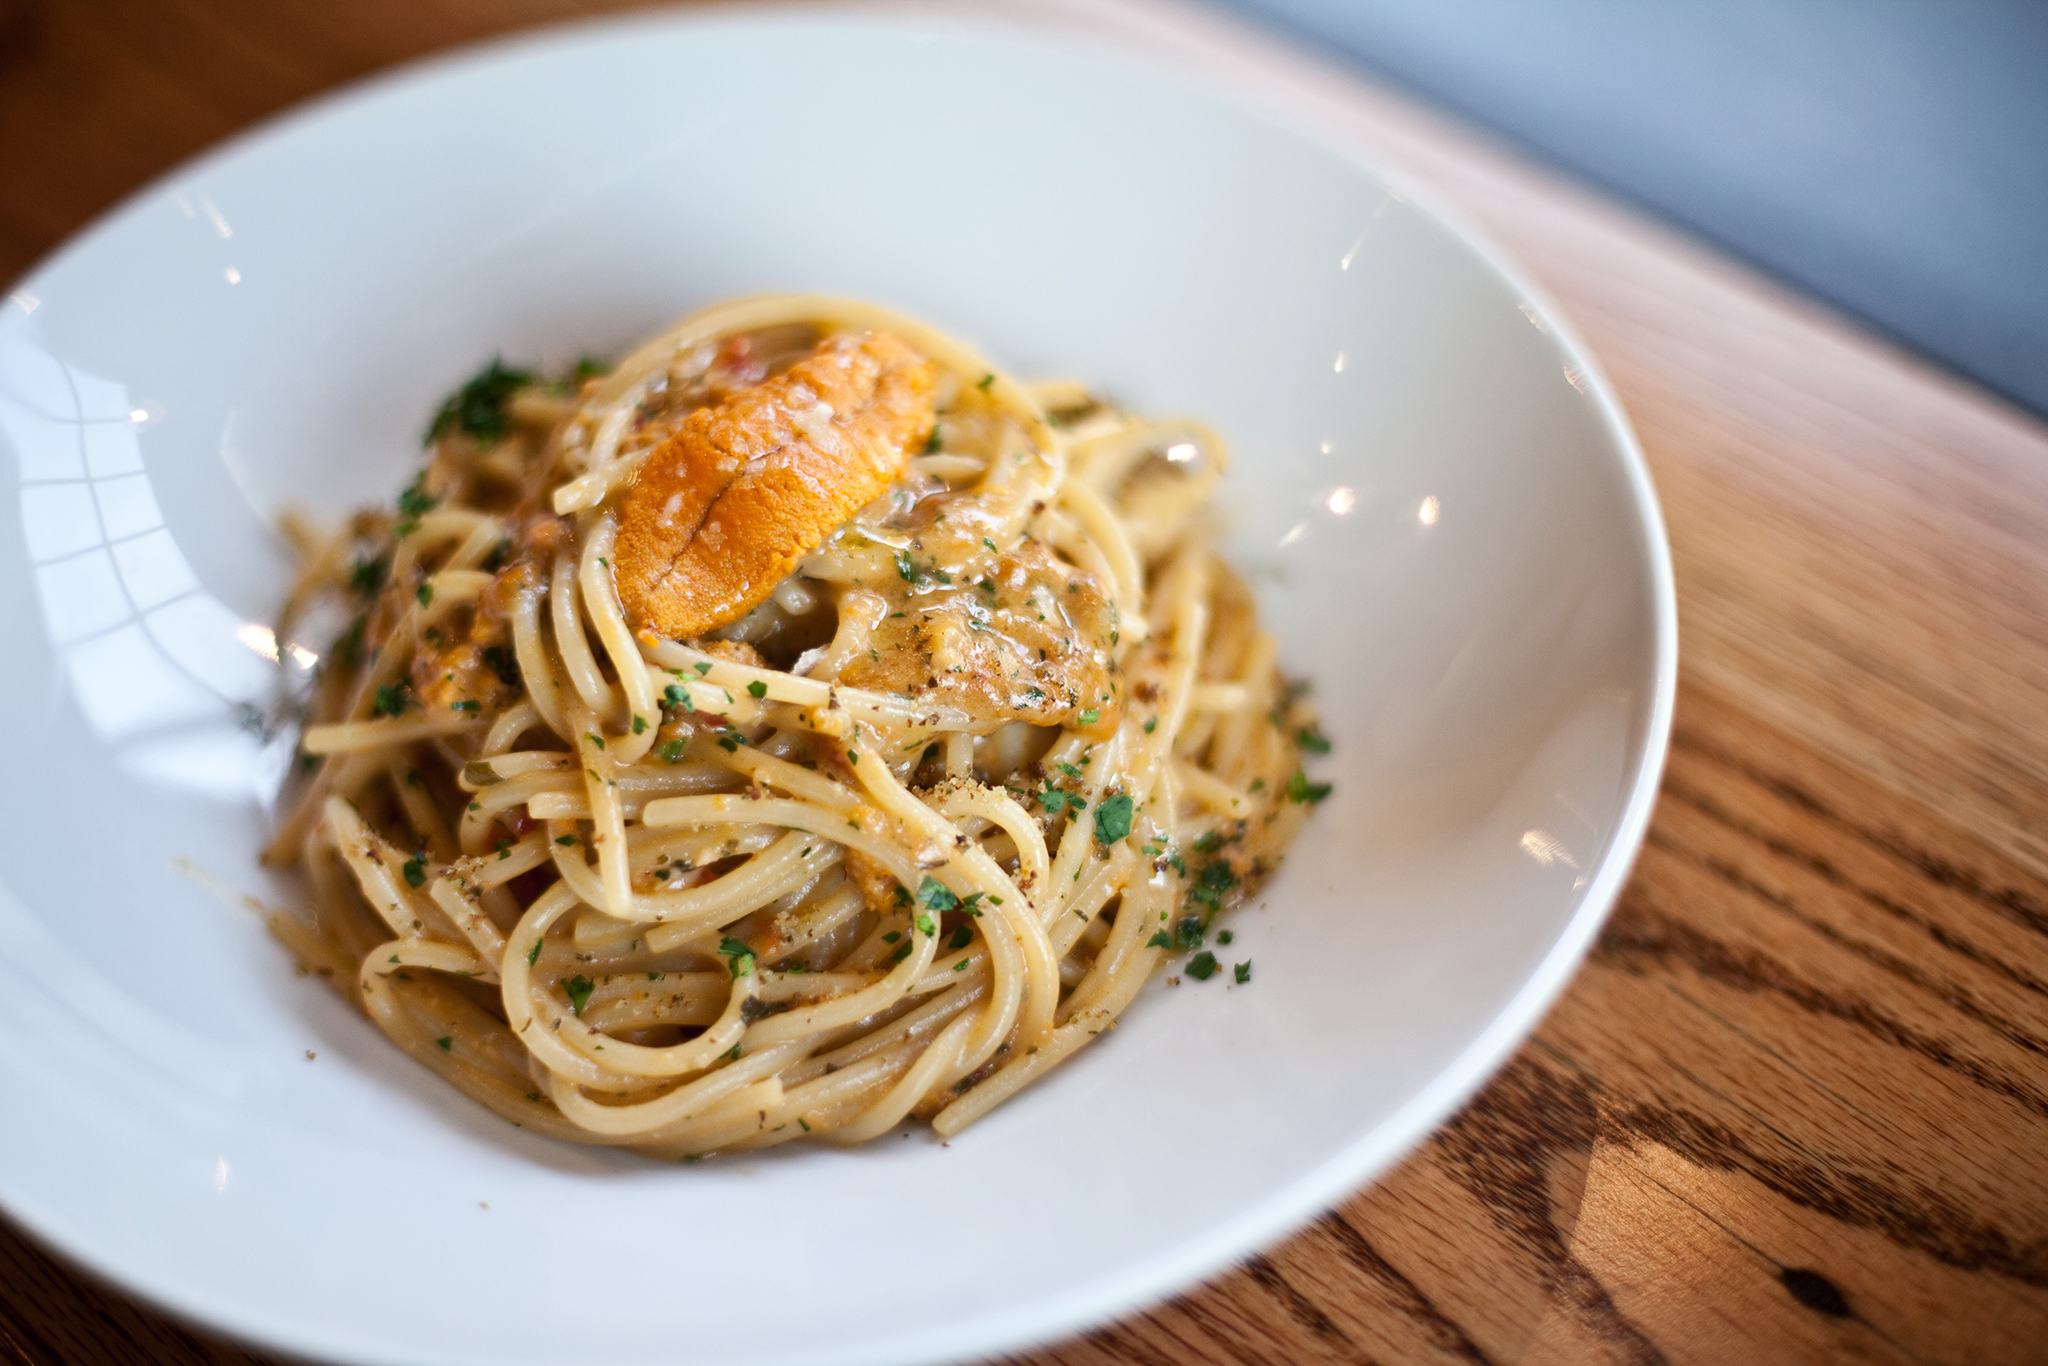 The 20 best Italian restaurants in America